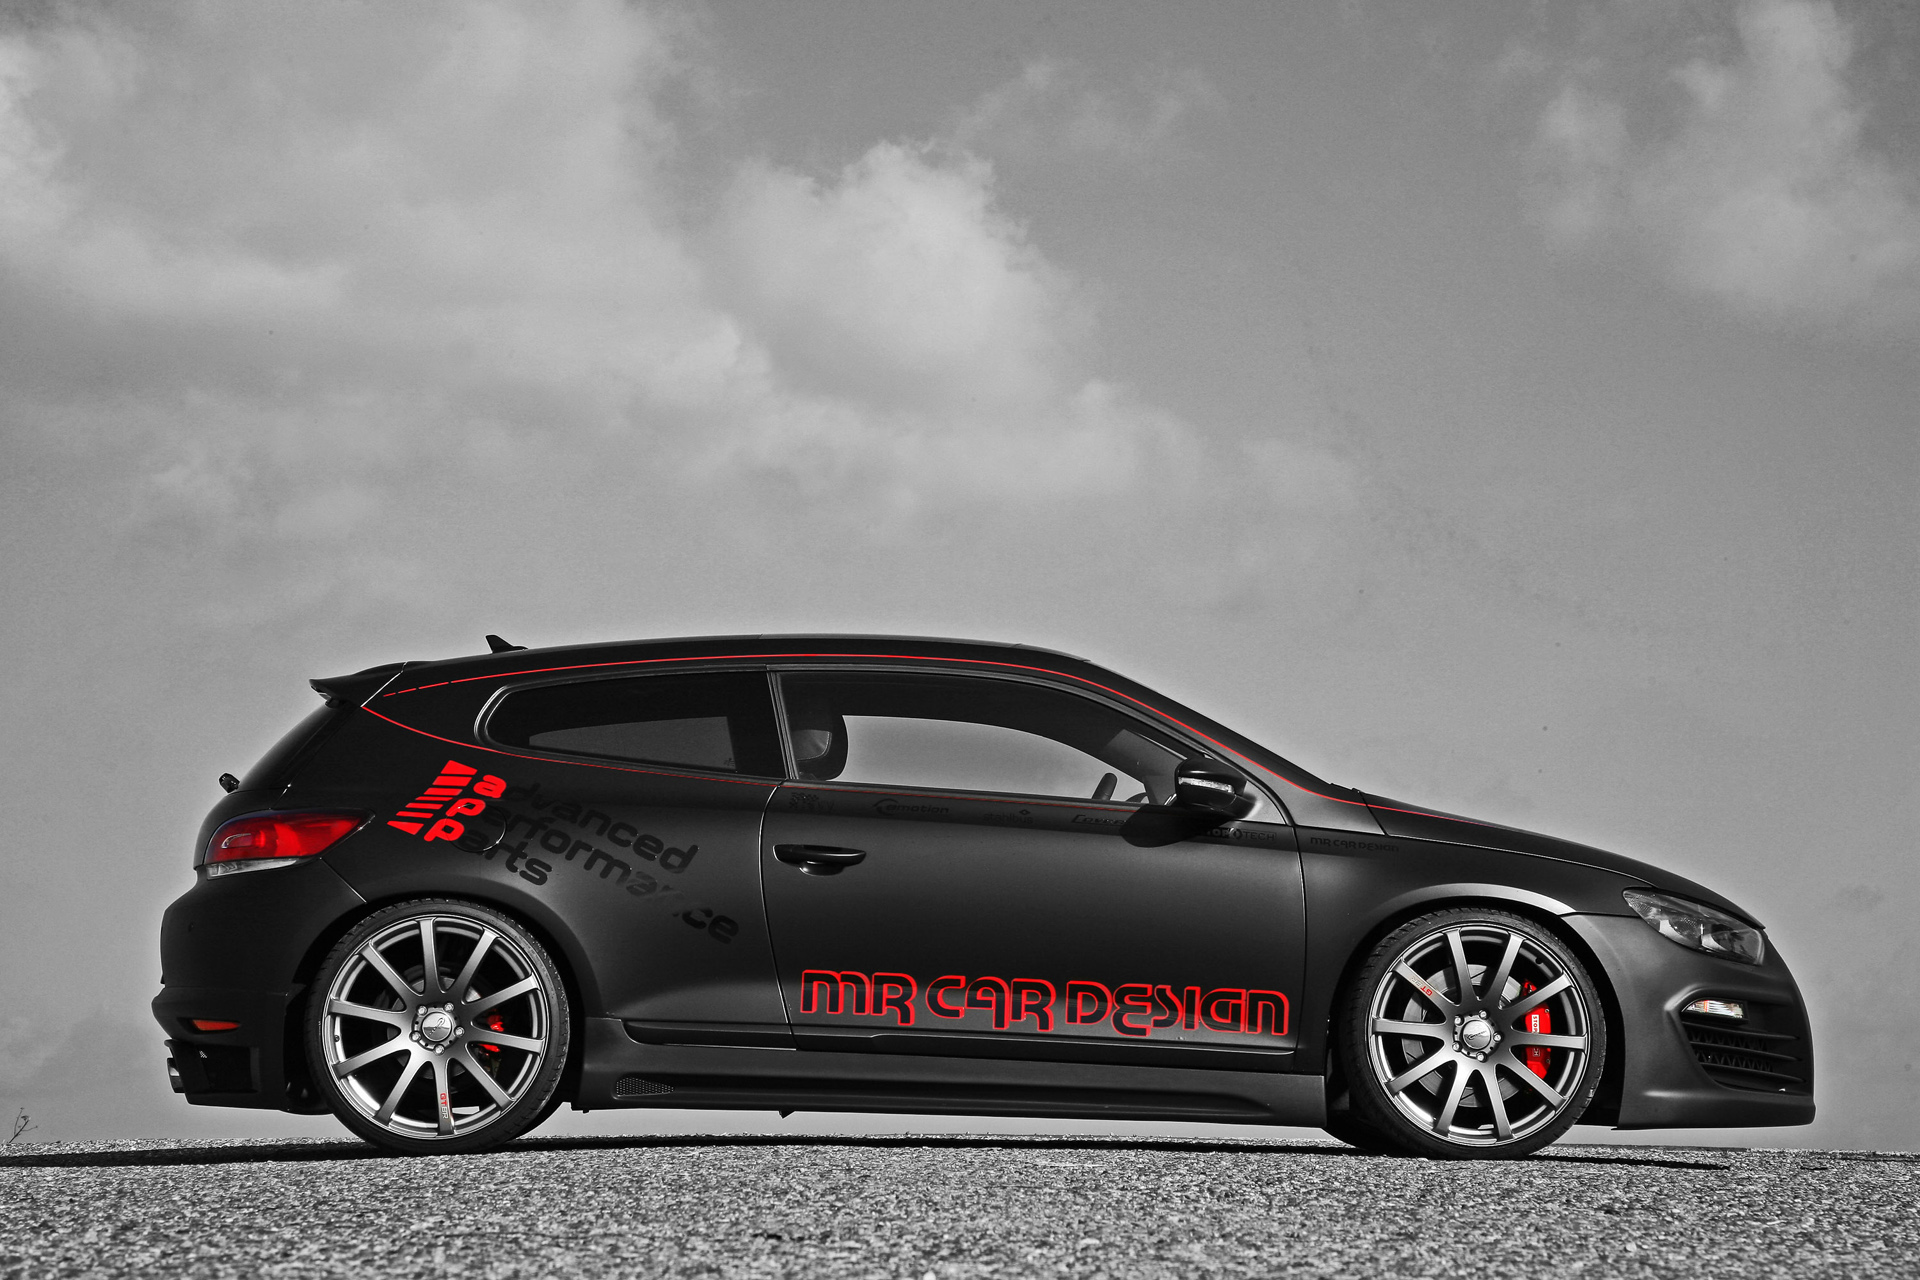 mr car design vw scirocco black rocco photos photogallery with 7 pics. Black Bedroom Furniture Sets. Home Design Ideas